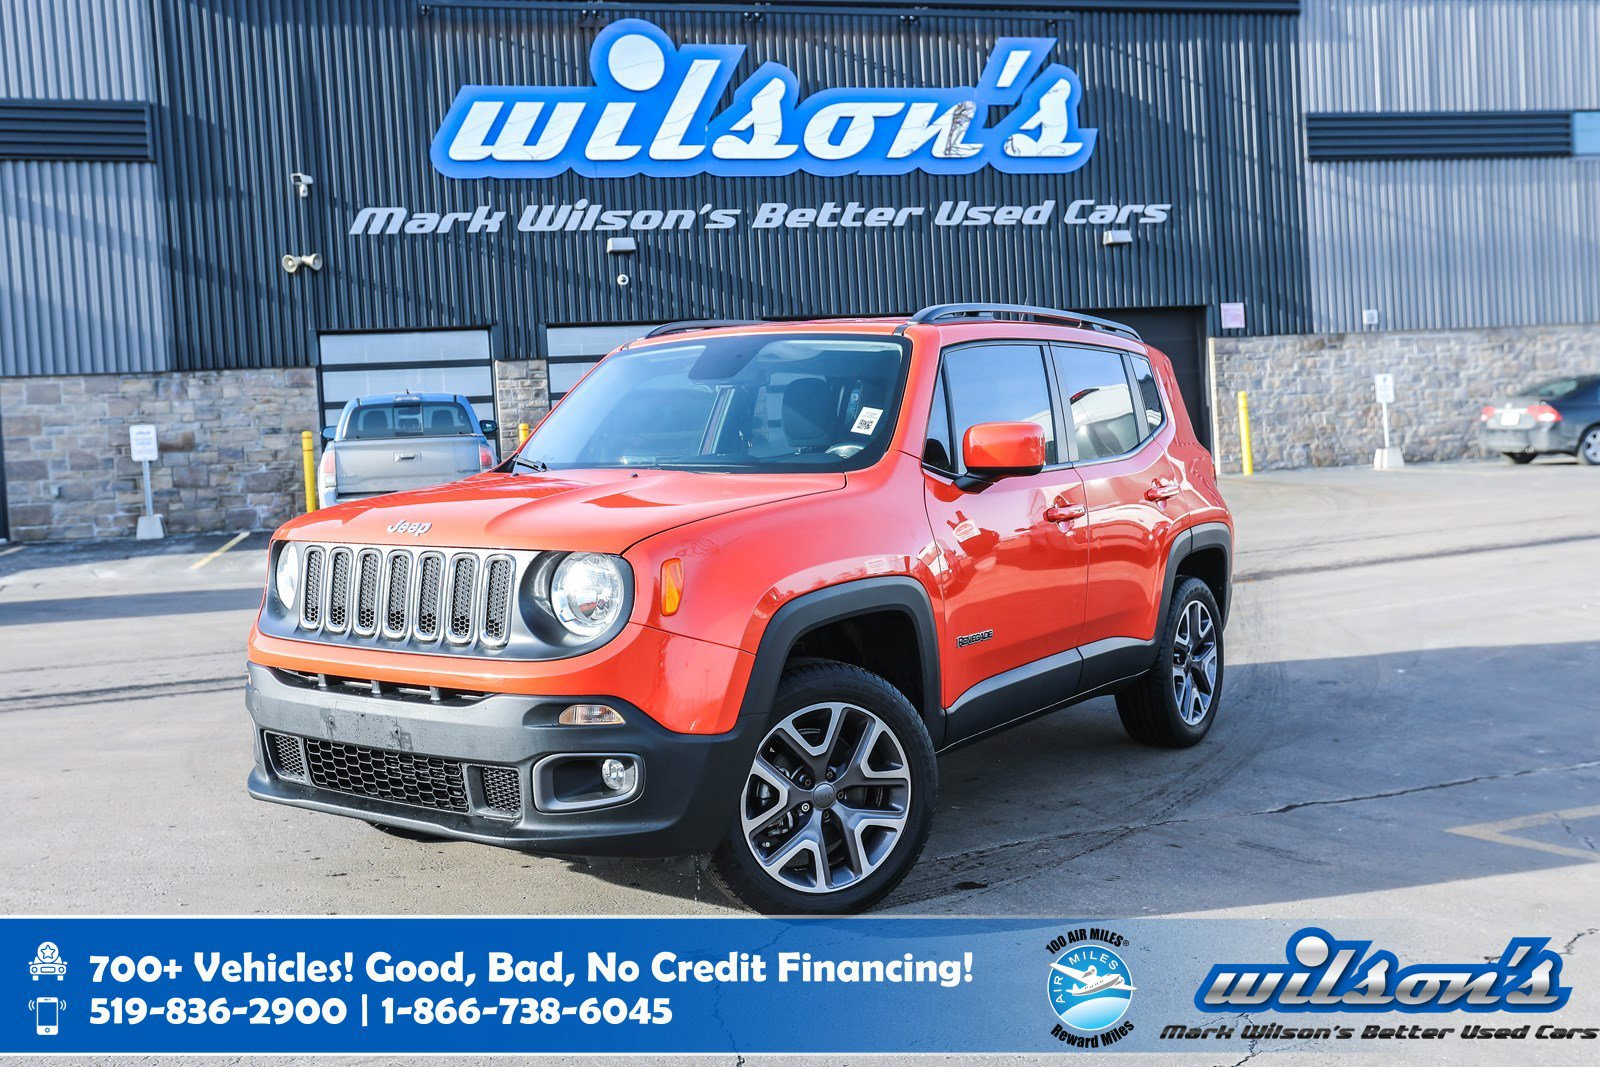 Certified Pre-Owned 2015 Jeep Renegade North 4x4, Navigation, Rear Camera, Heated Steering + Seats, Blindspot Alert and more!